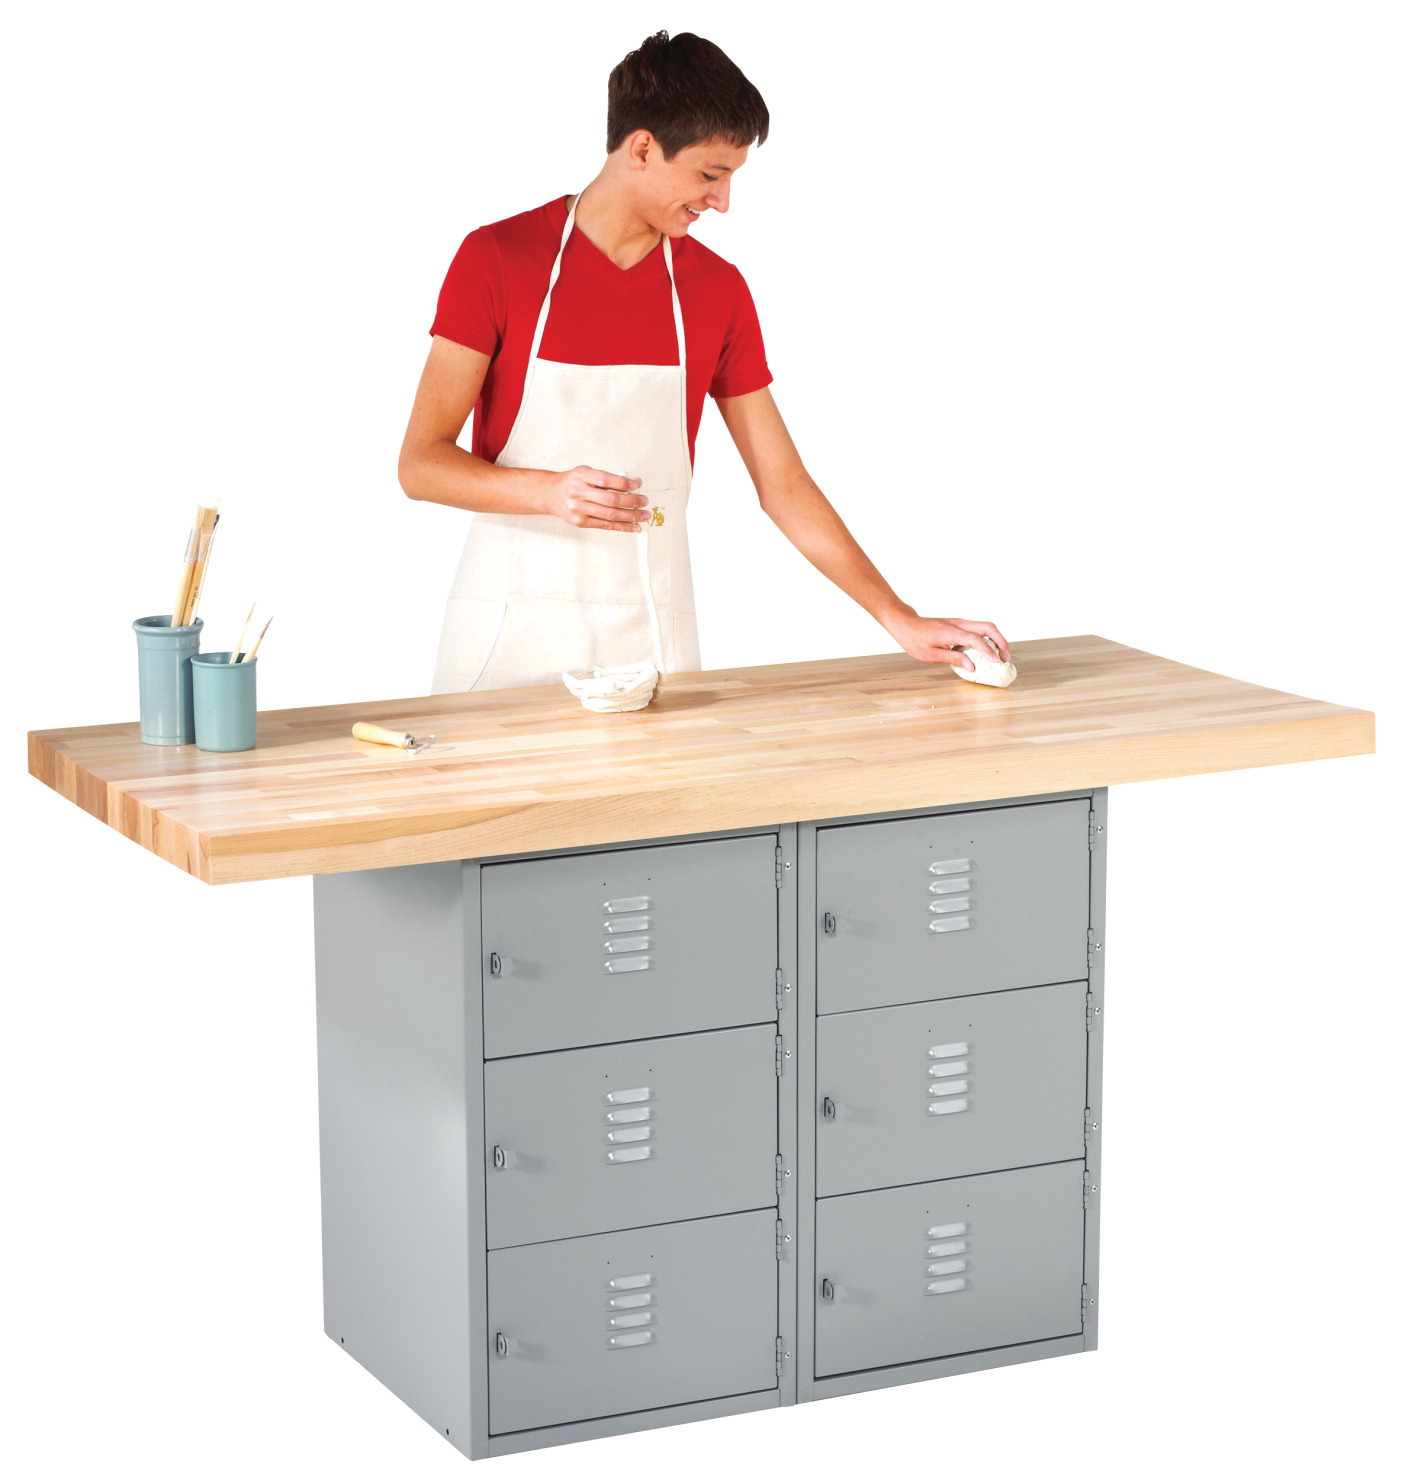 Diversified Woodcrafts 2 Station 6 Locker Workbench, 64 x 28 x 33-1/4 Inches, Various Options